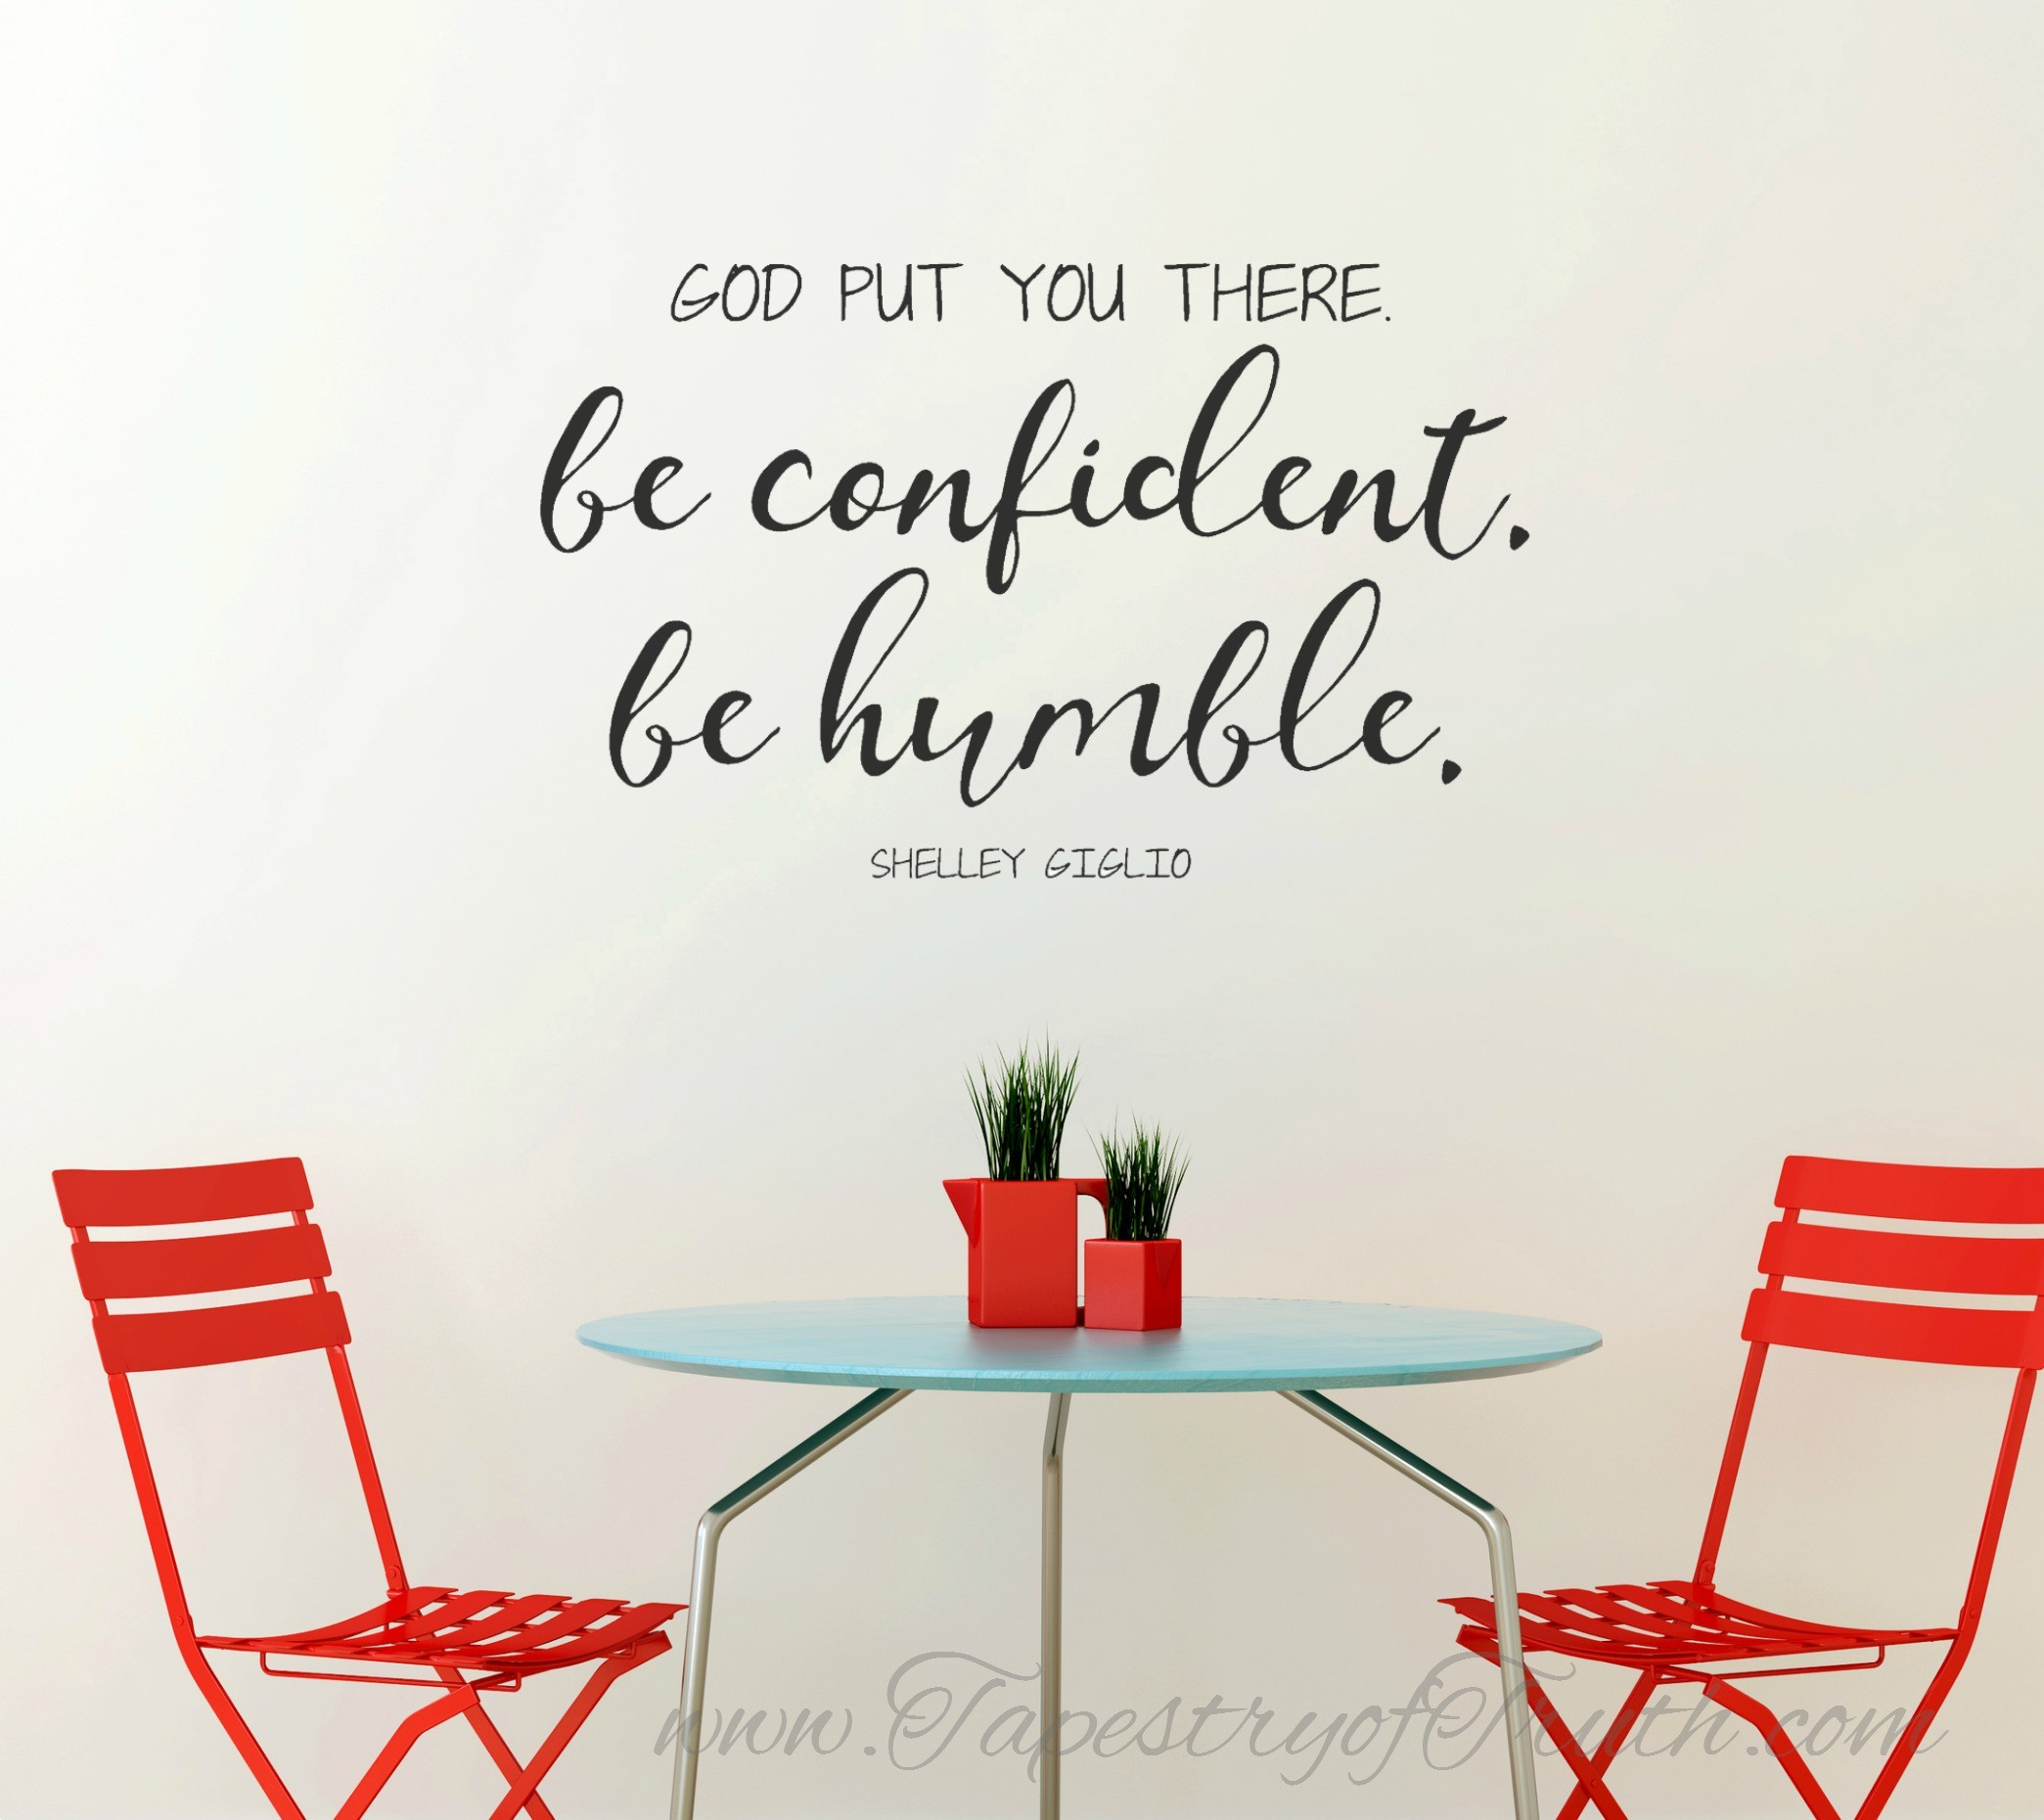 God put you there. Be confident. Be humble. Shelley Giglio